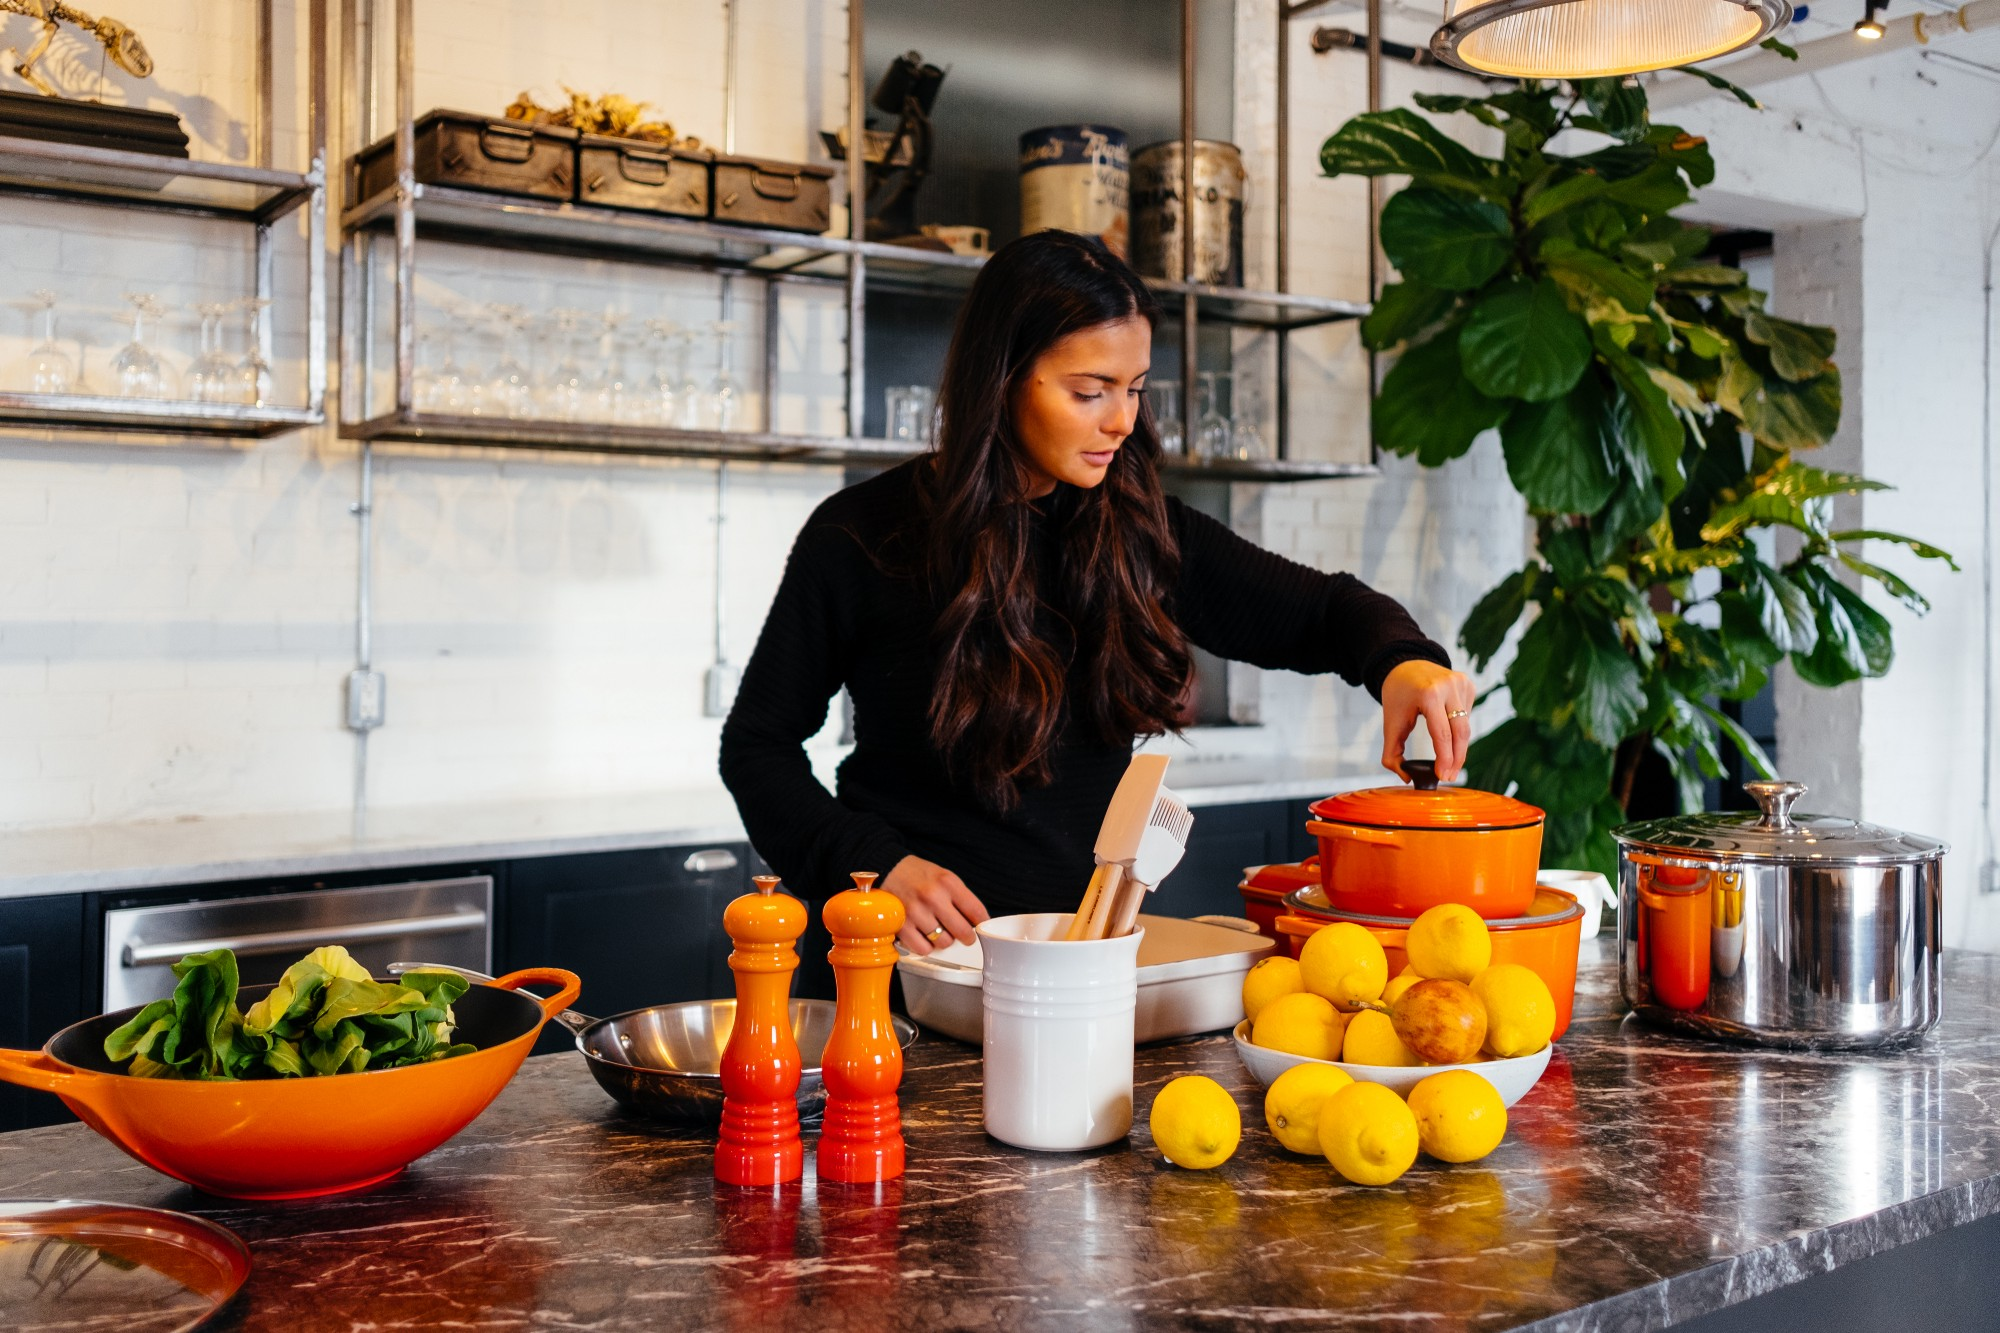 A woman in a kitchen with colourful equipment and a bowl of lemons